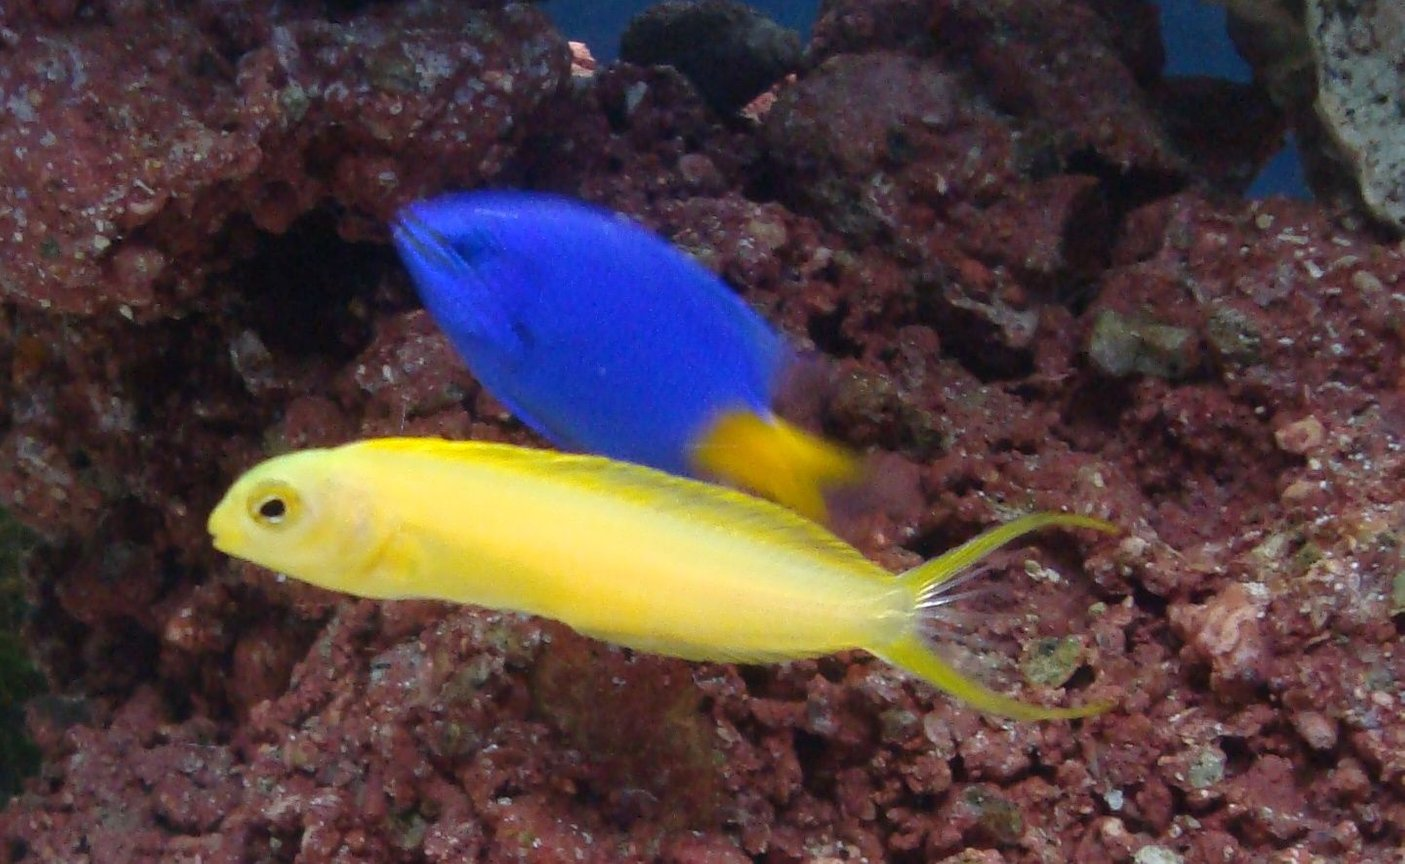 saltwater fish - meiacanthus oualanensis - canary blenny stocking in 20 gallons tank - blenny with damsel